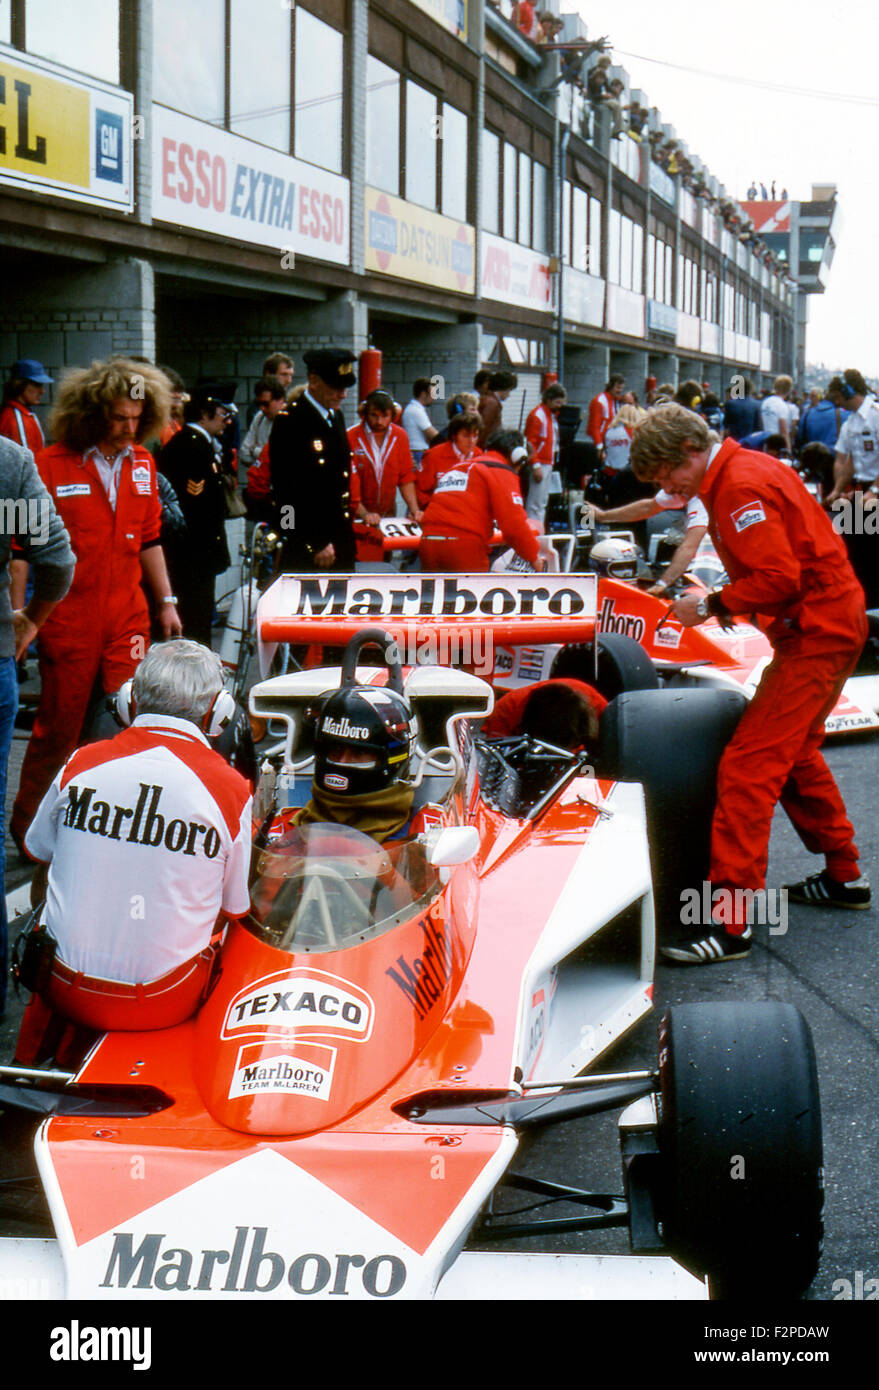 Circuit Monza James Hunt In A Mclaren M23 In The Pits, Italian Gp At